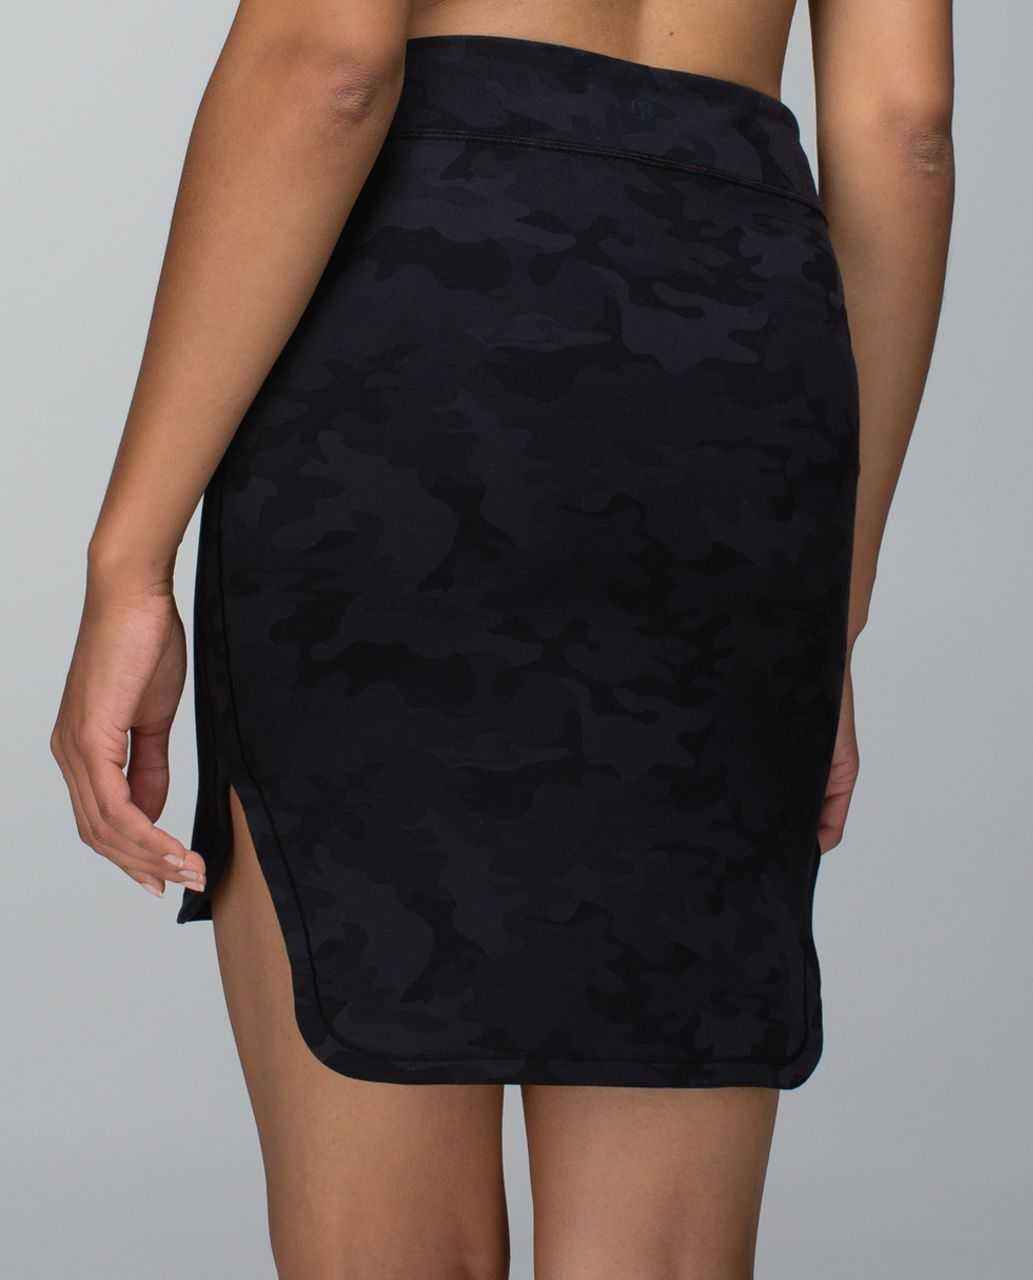 Lululemon City Skirt - Savasana Camo 20cm New Black / Soot